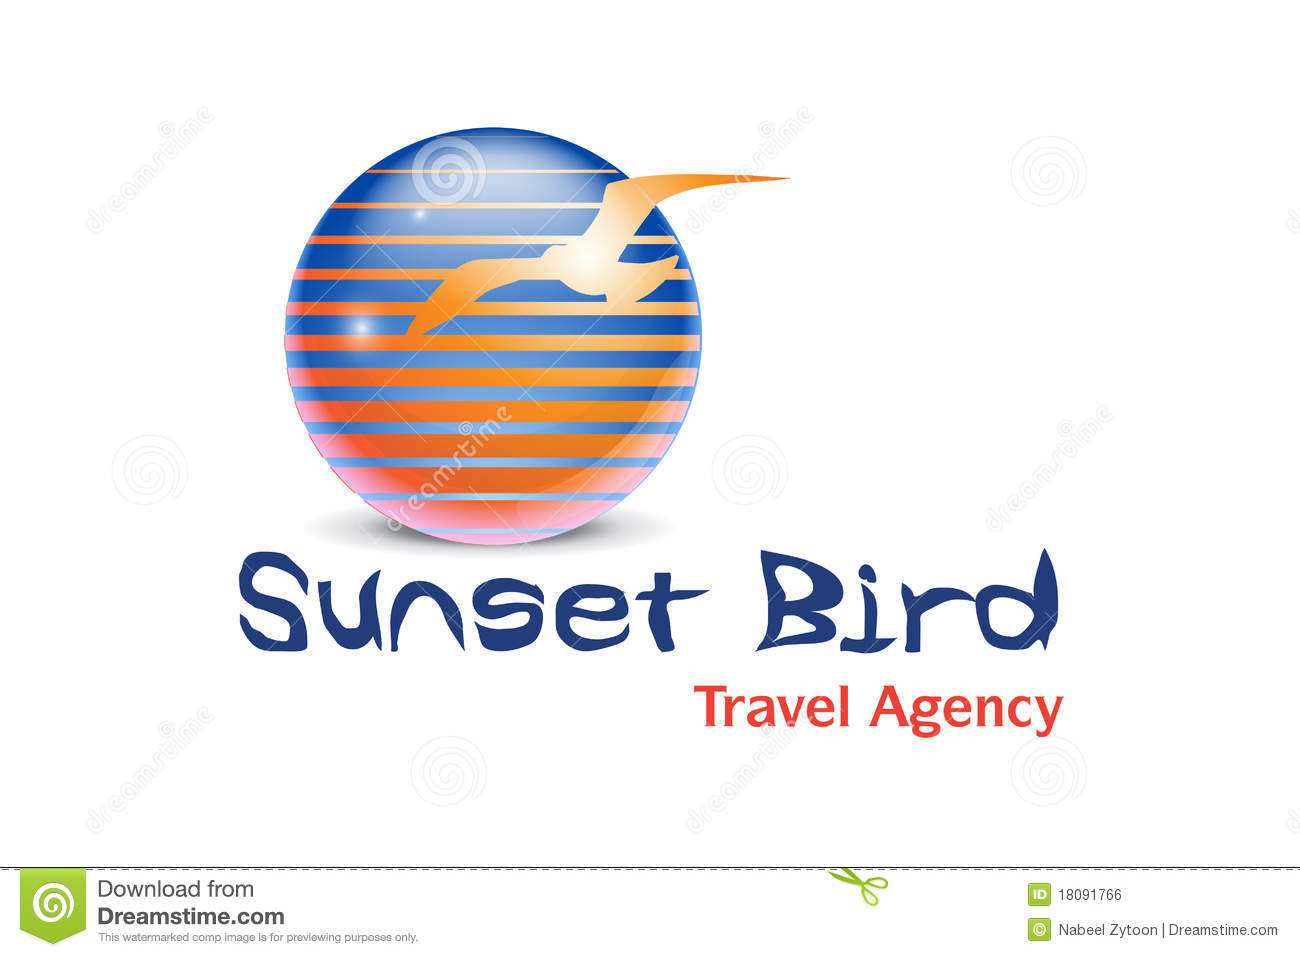 Travel agency logo design royalty free stock image image for Design agency